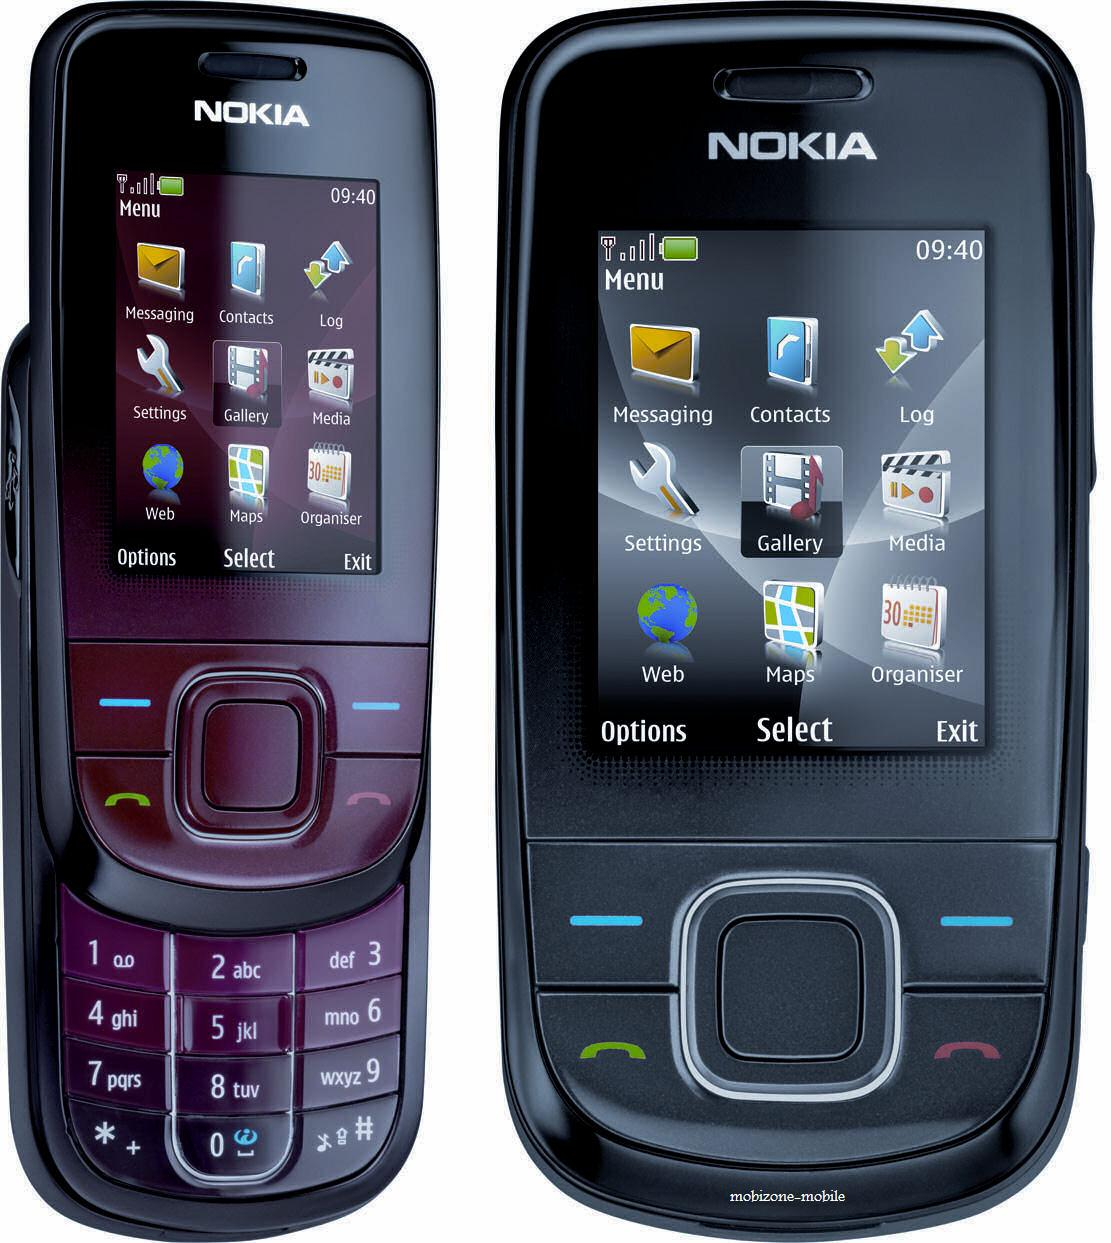 Nokia 3600 Slide Mobile Phone Nokia 3600 Slide Mobile Phone | Apps ...